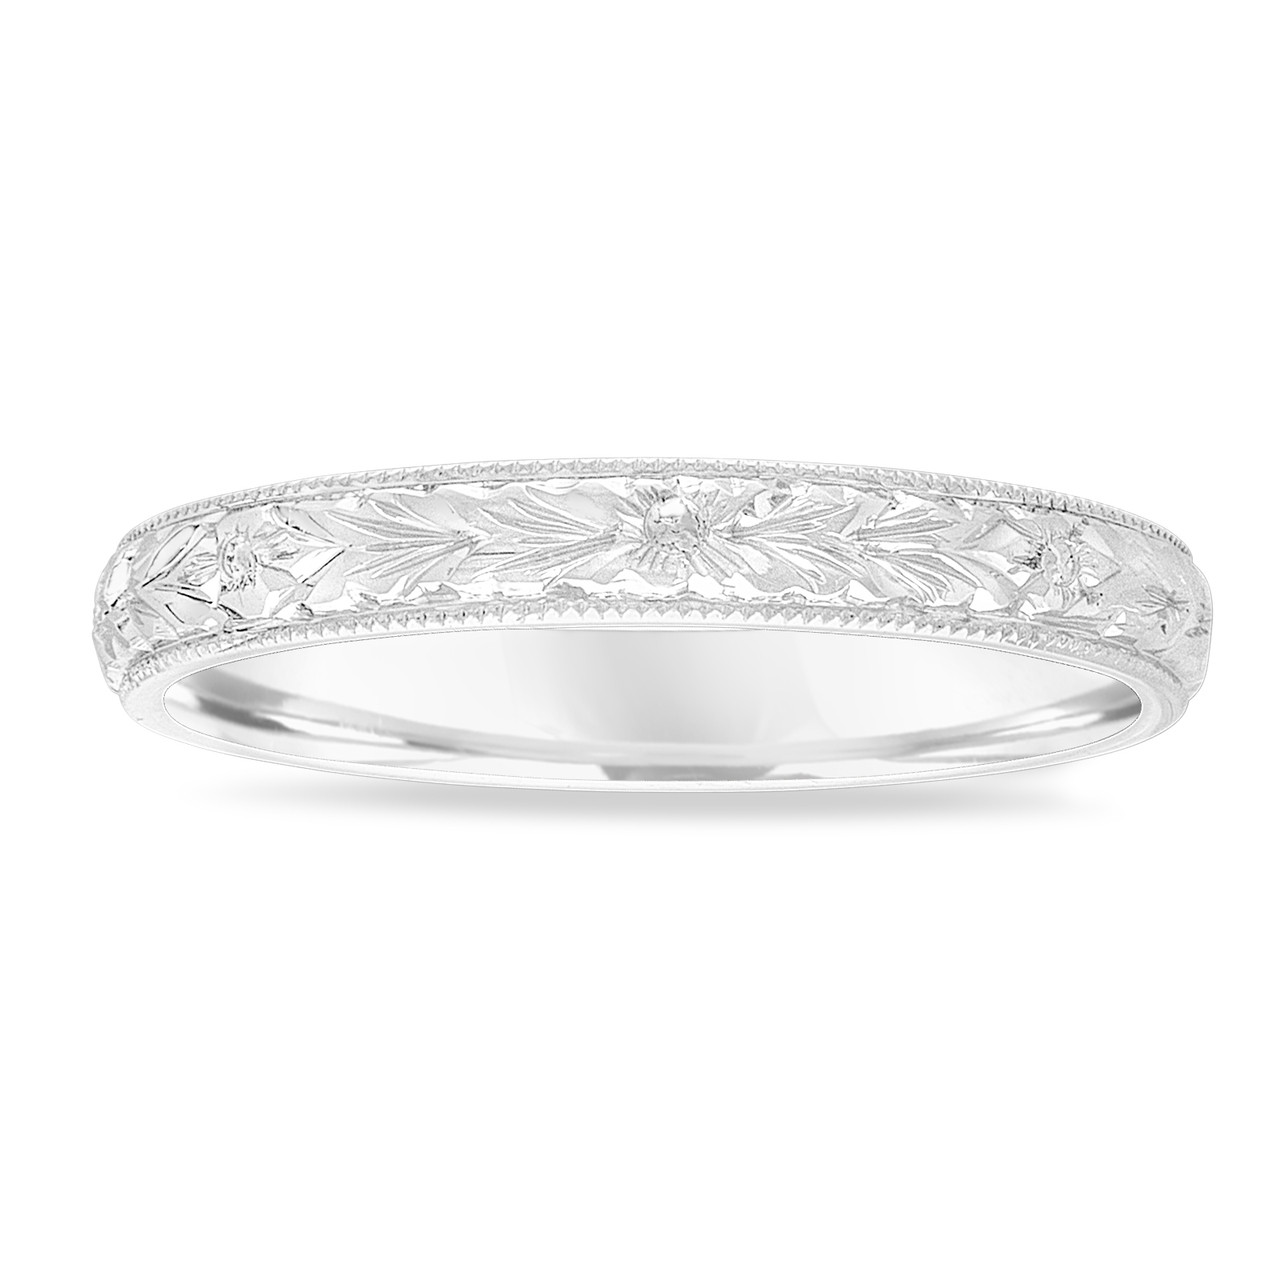 Handcrafted In The Usa: White Gold Engraved Wedding Bands At Websimilar.org